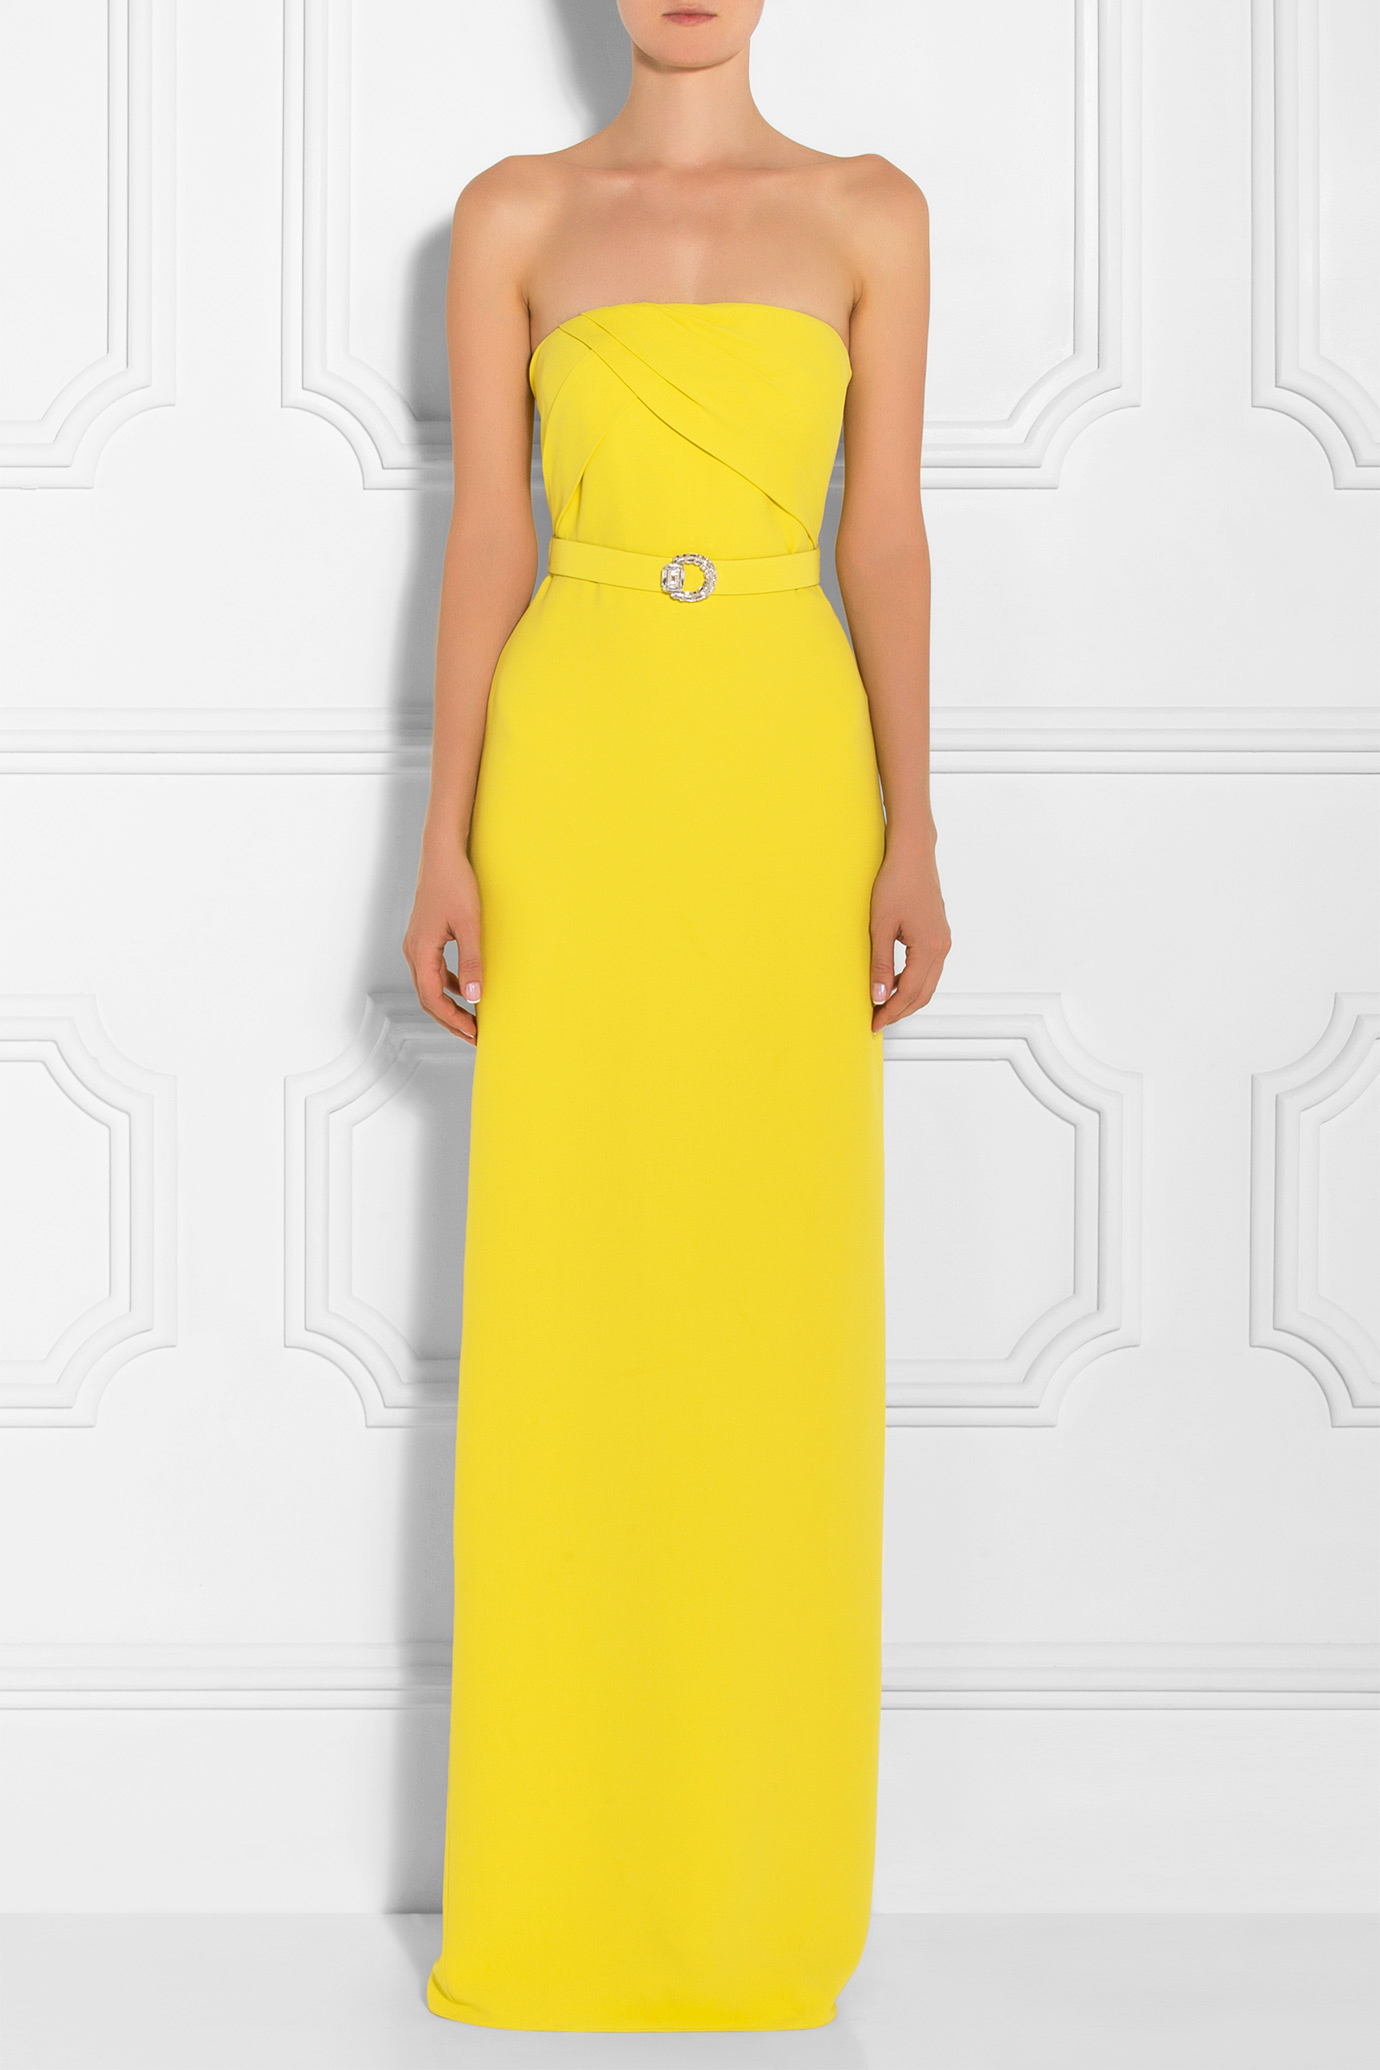 Gucci Strapless Gown in Yellow | Lyst